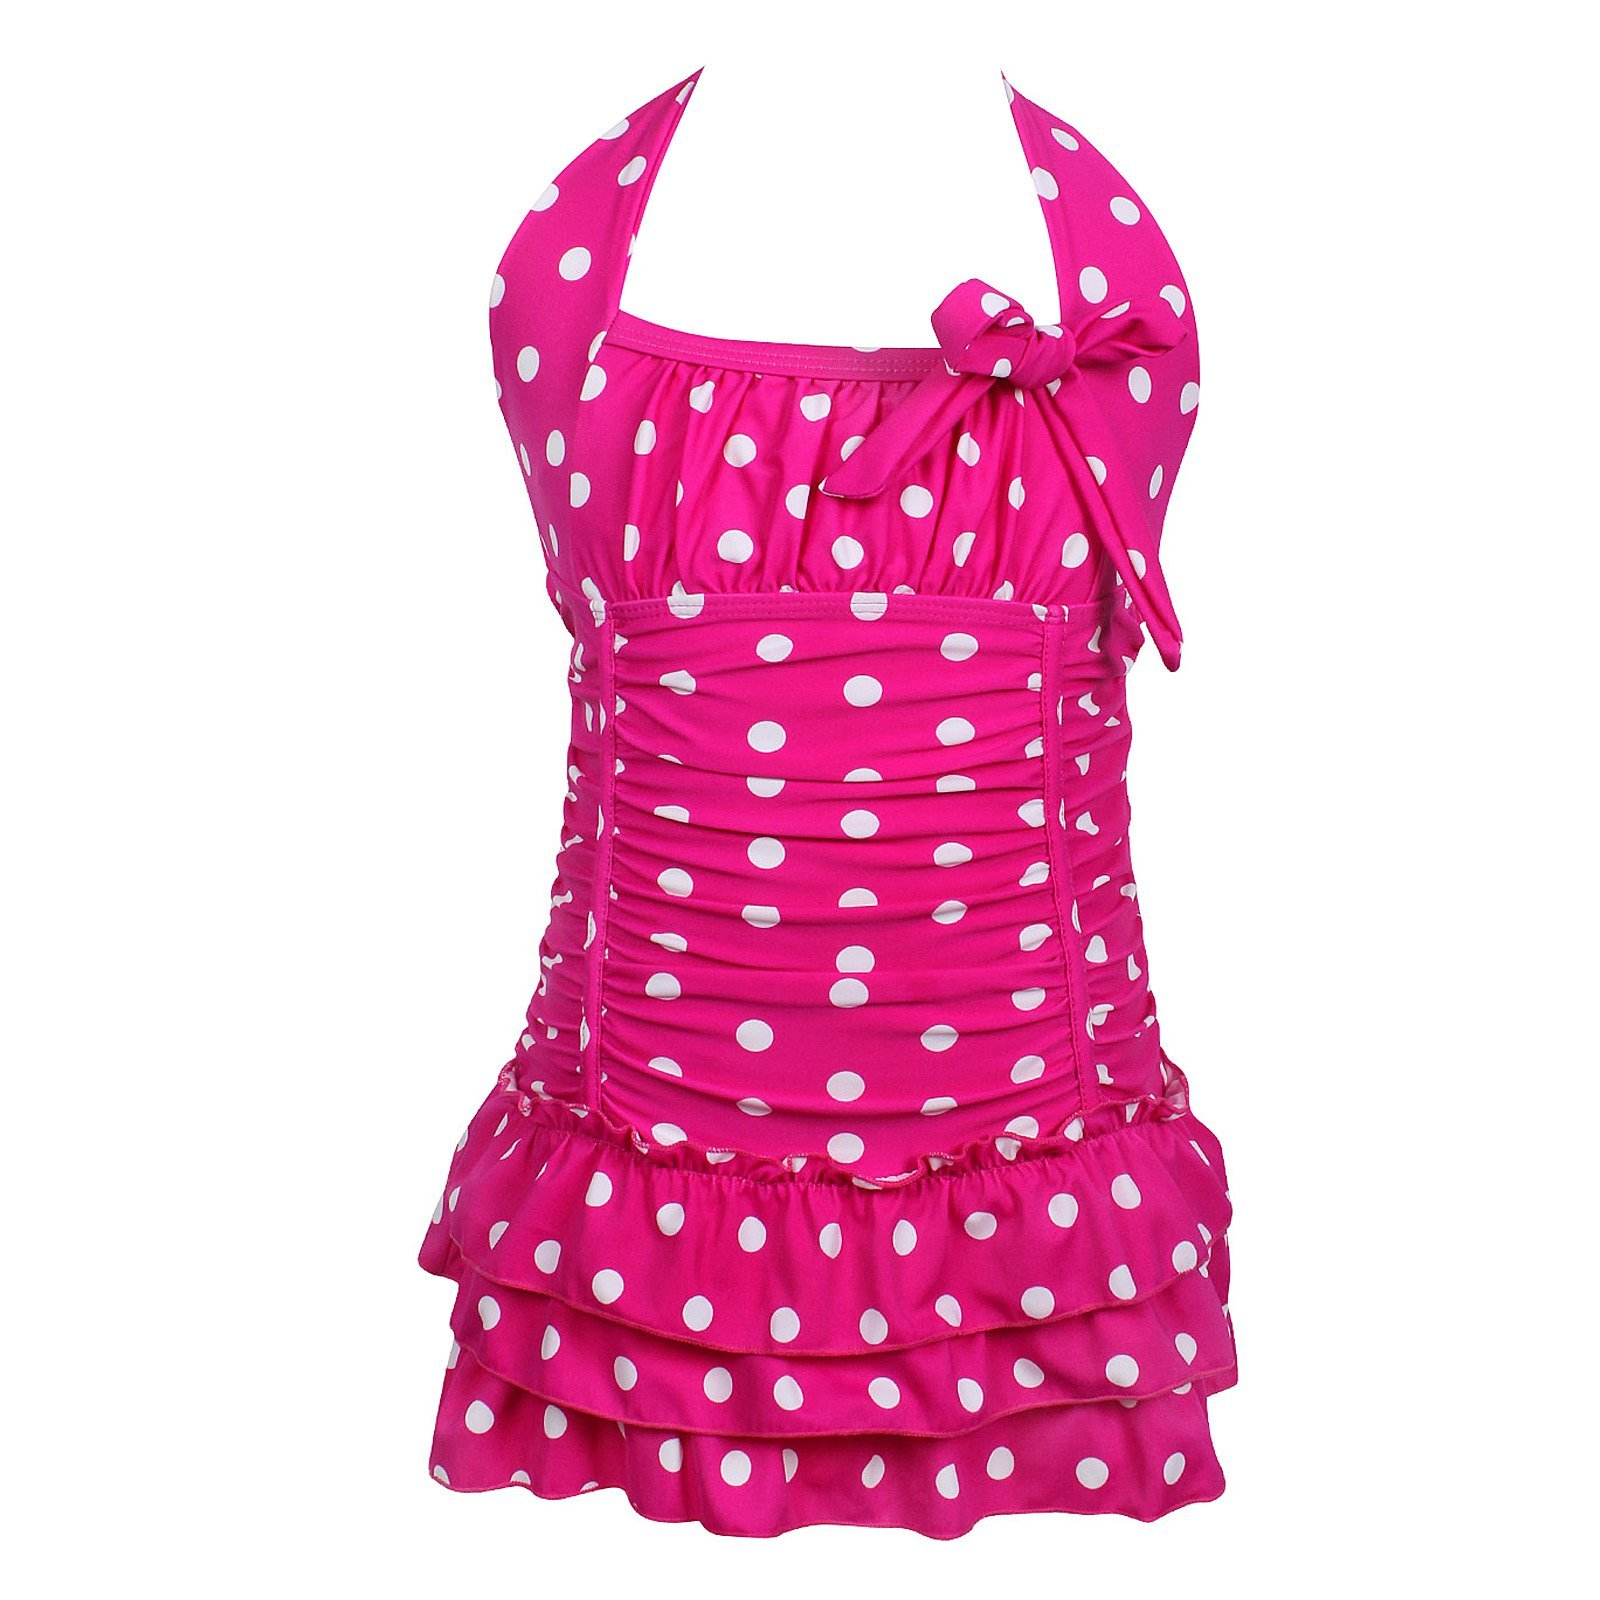 qyqkfly Girls Polka Dot Bathing Suit Adjustable One Piece 4Y-16Y Swimsuit (FBA) by qyqkfly